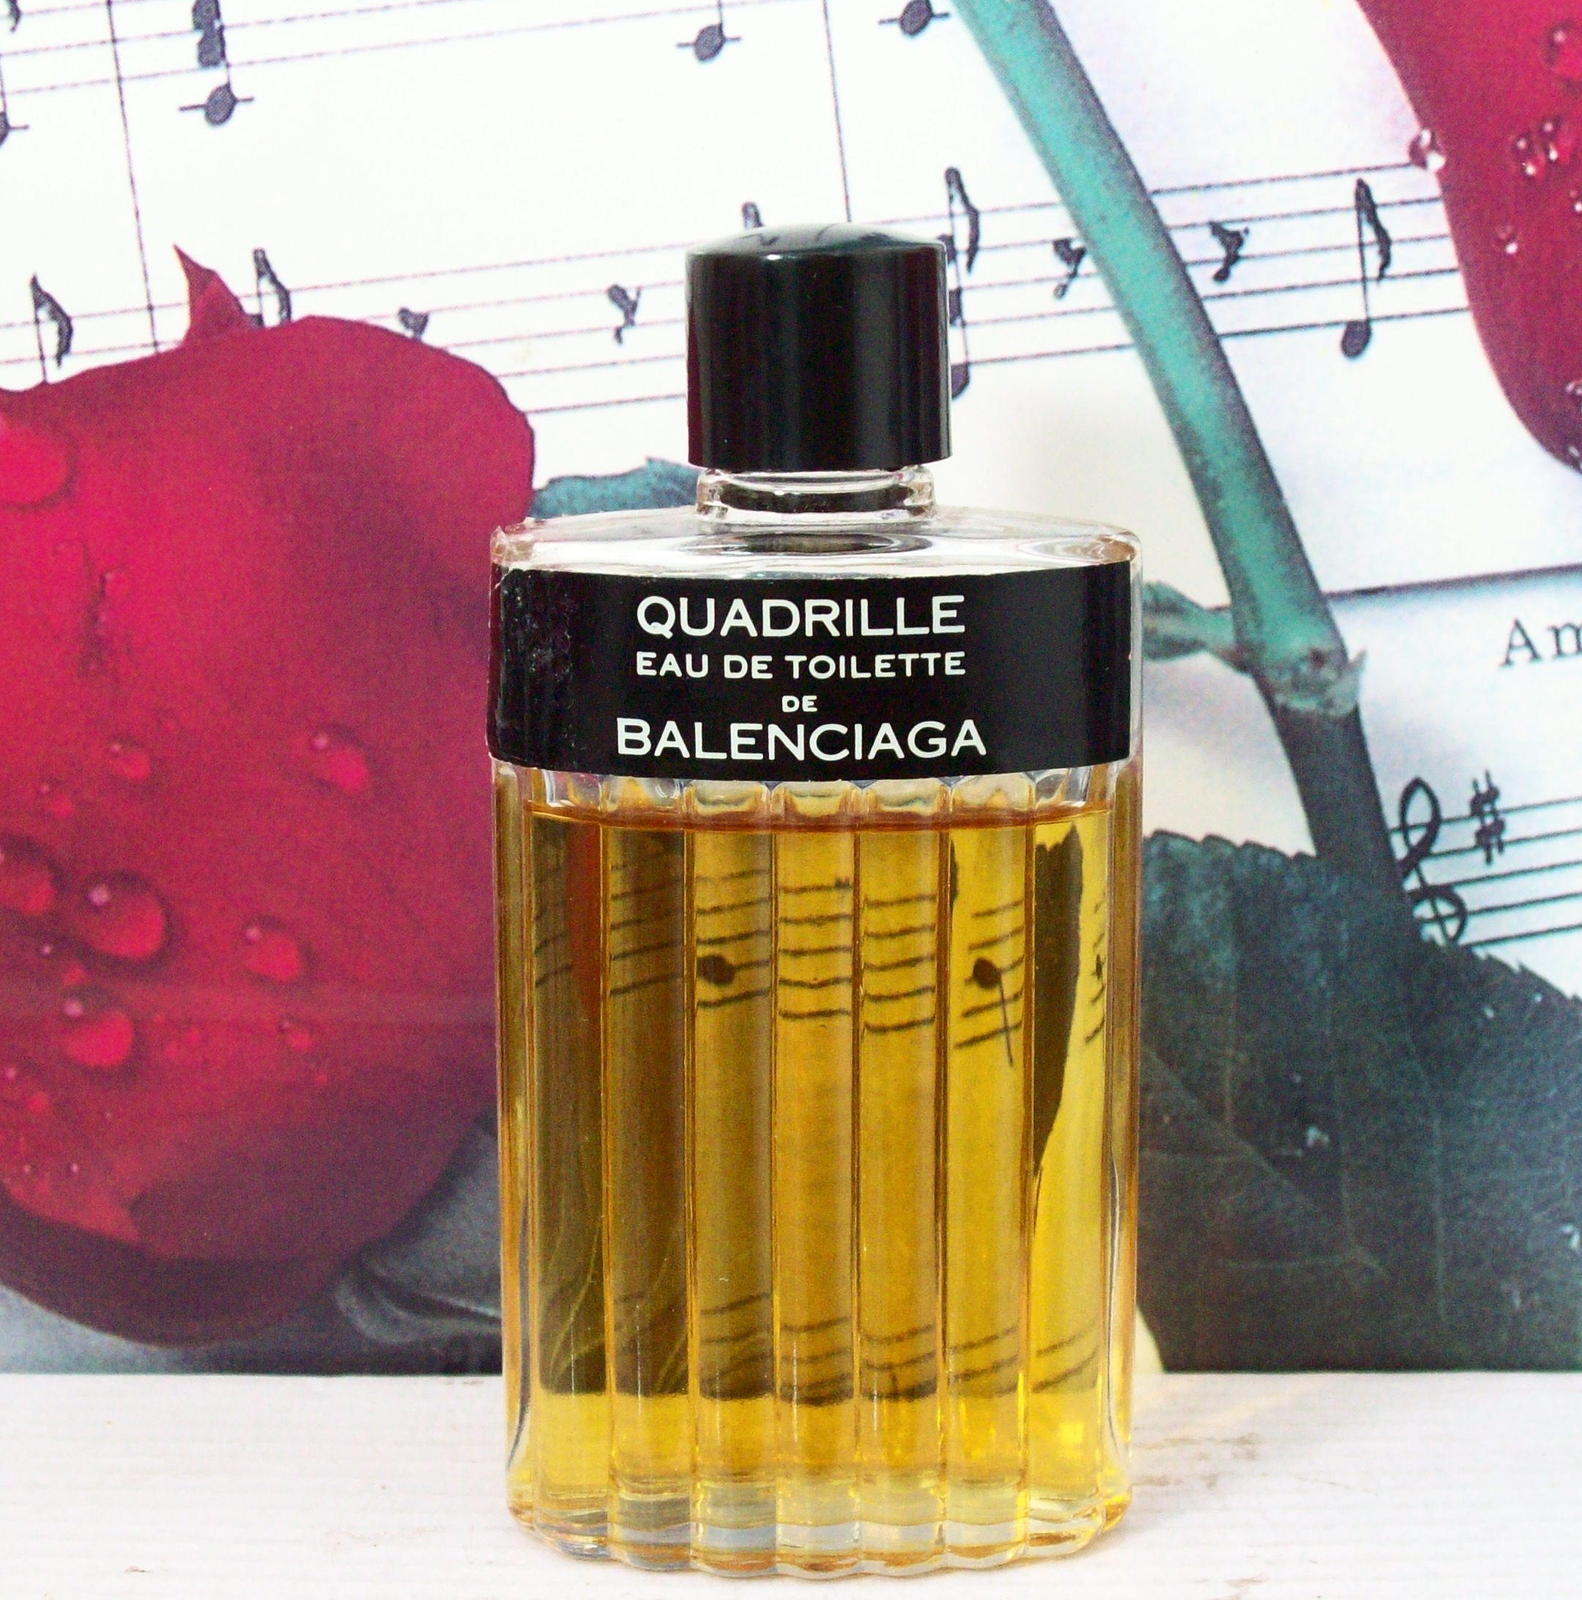 Primary image for Quadrille By Balenciaga EDT Spray 2.0 FL. OZ. 75% Full, Without Box.